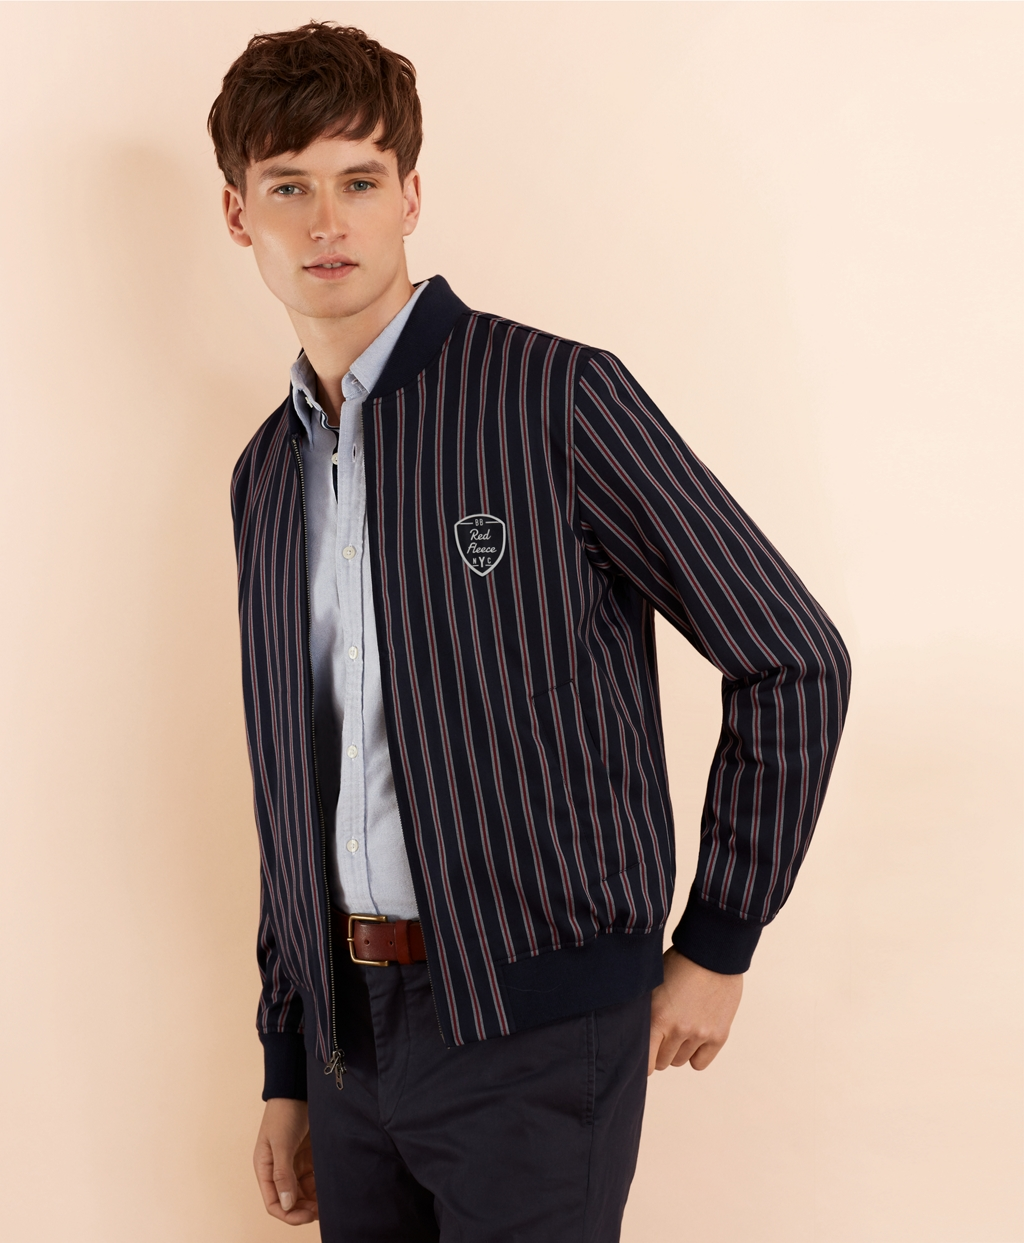 60s 70s Men's Jackets & Sweaters Brooks Brothers Mens Striped Bomber Jacket $228.00 AT vintagedancer.com